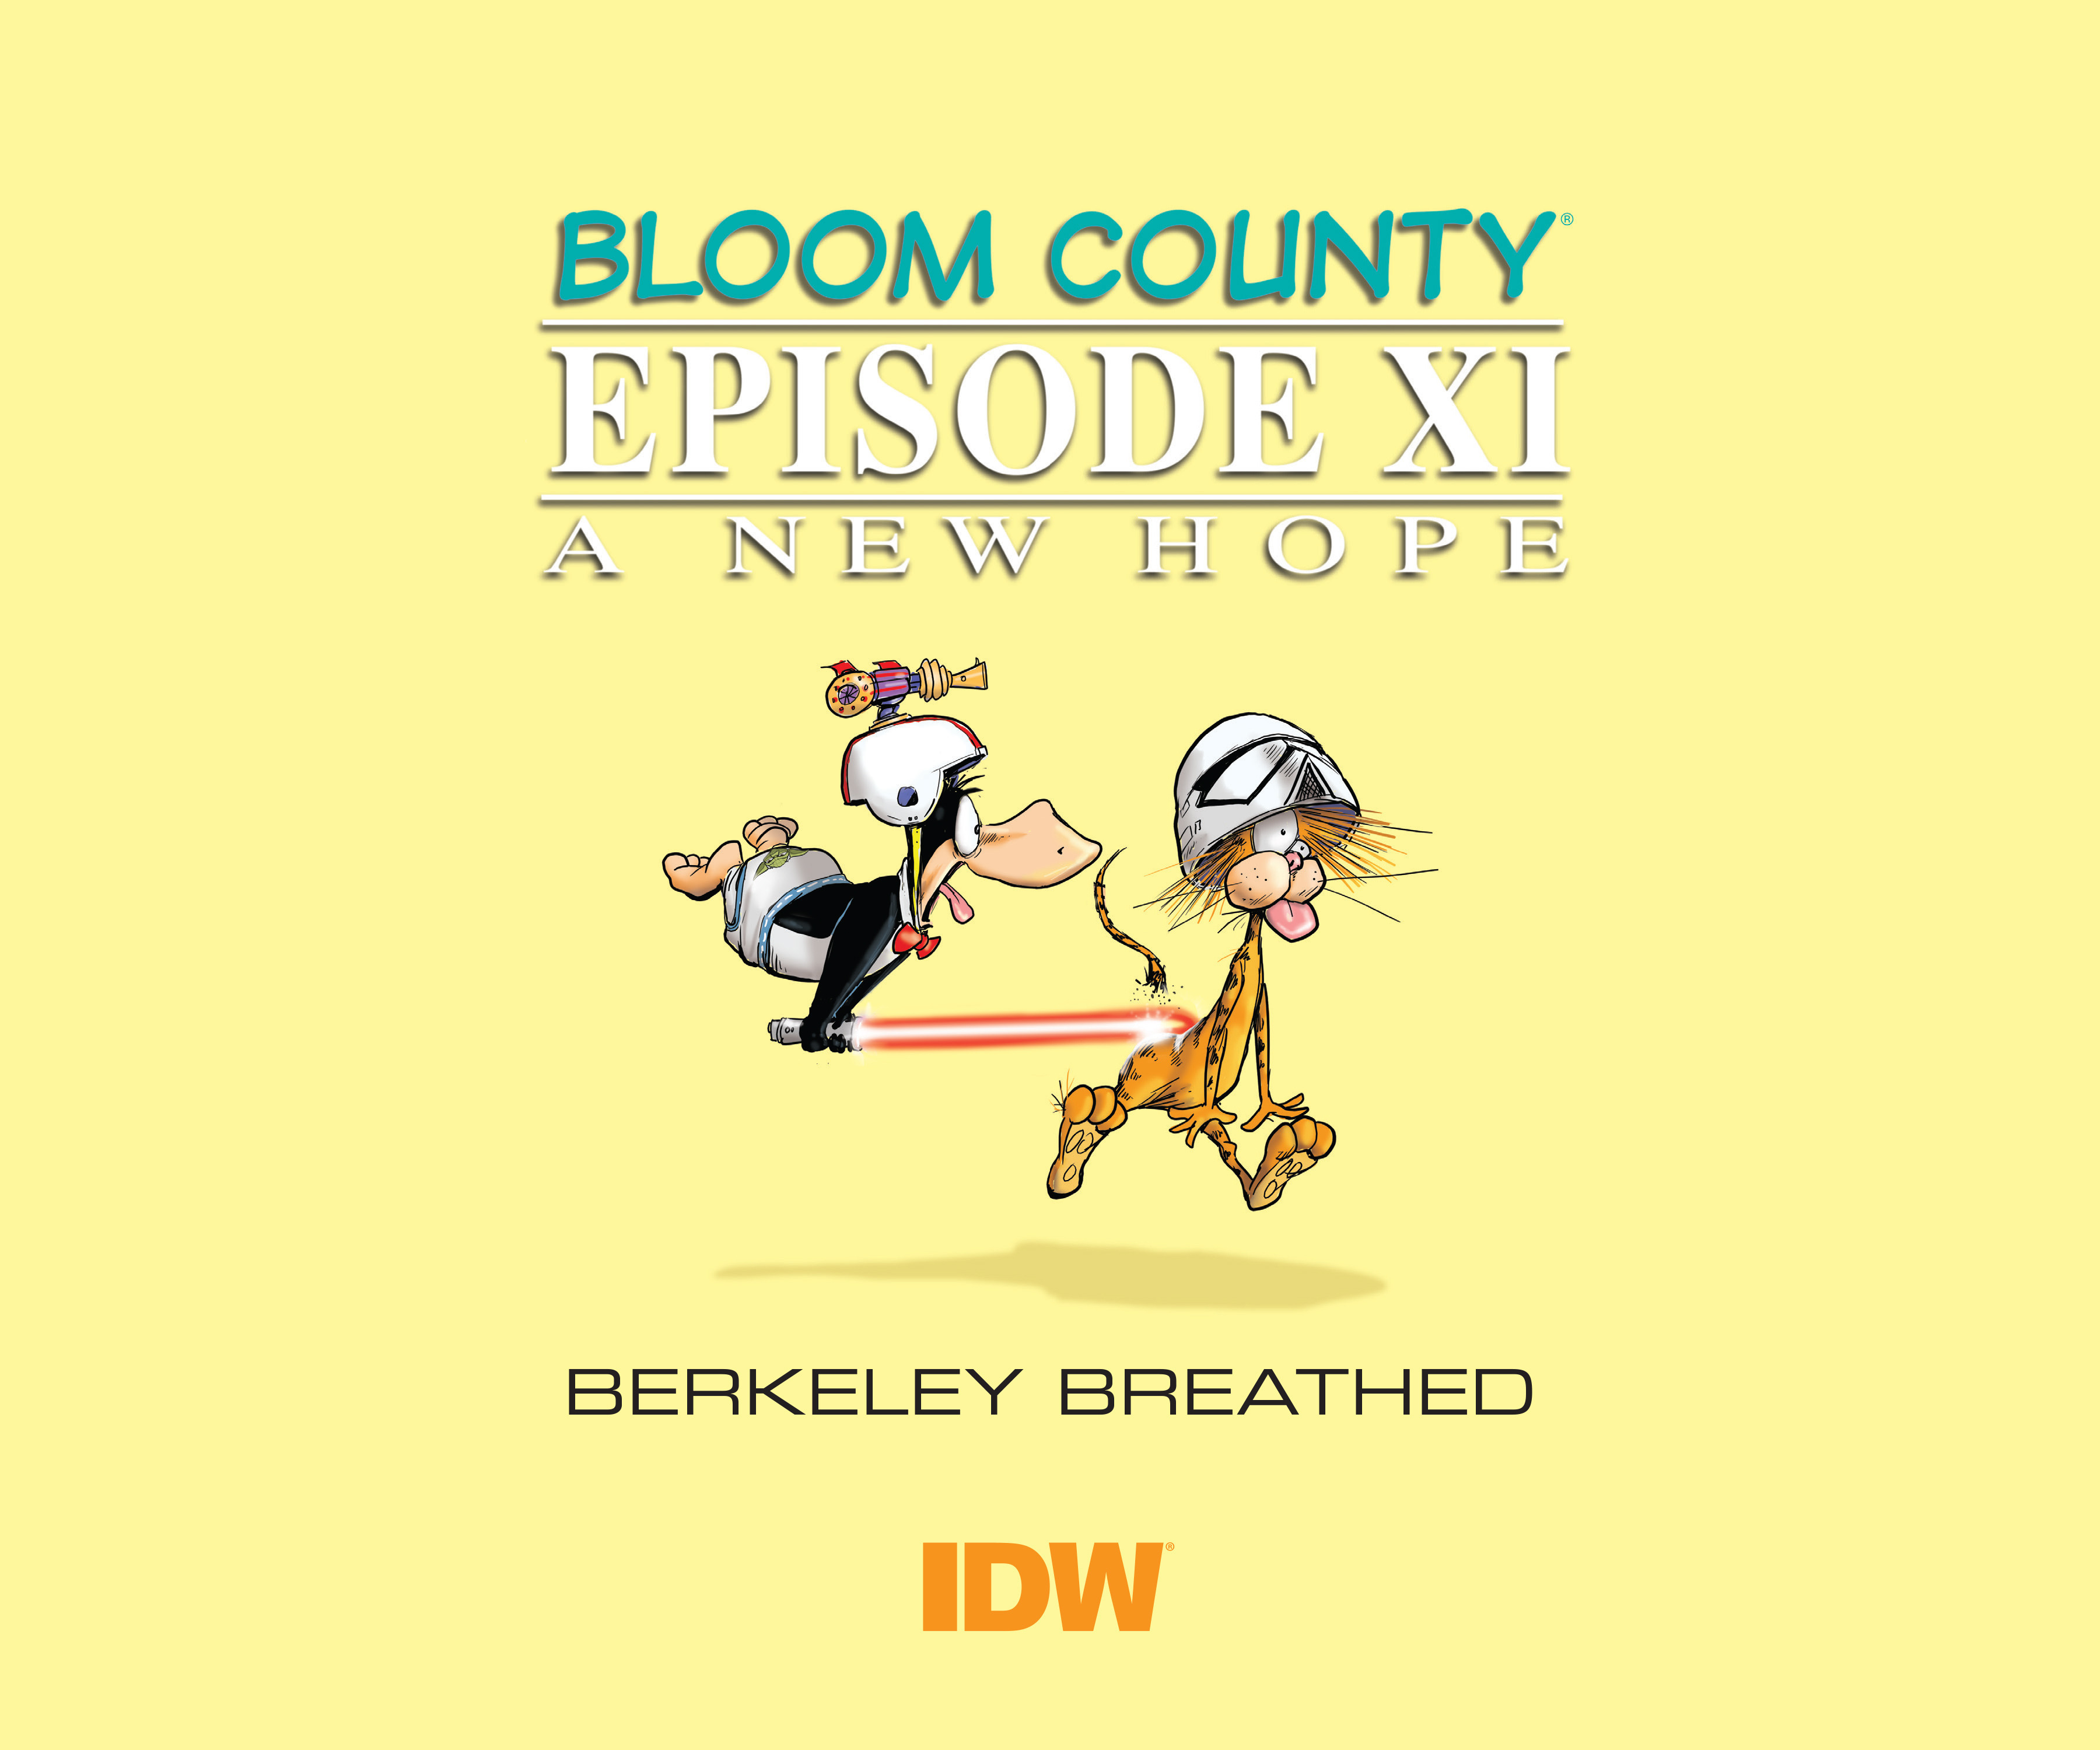 Read online Bloom County Episode XI: A New Hope comic -  Issue # Full - 3